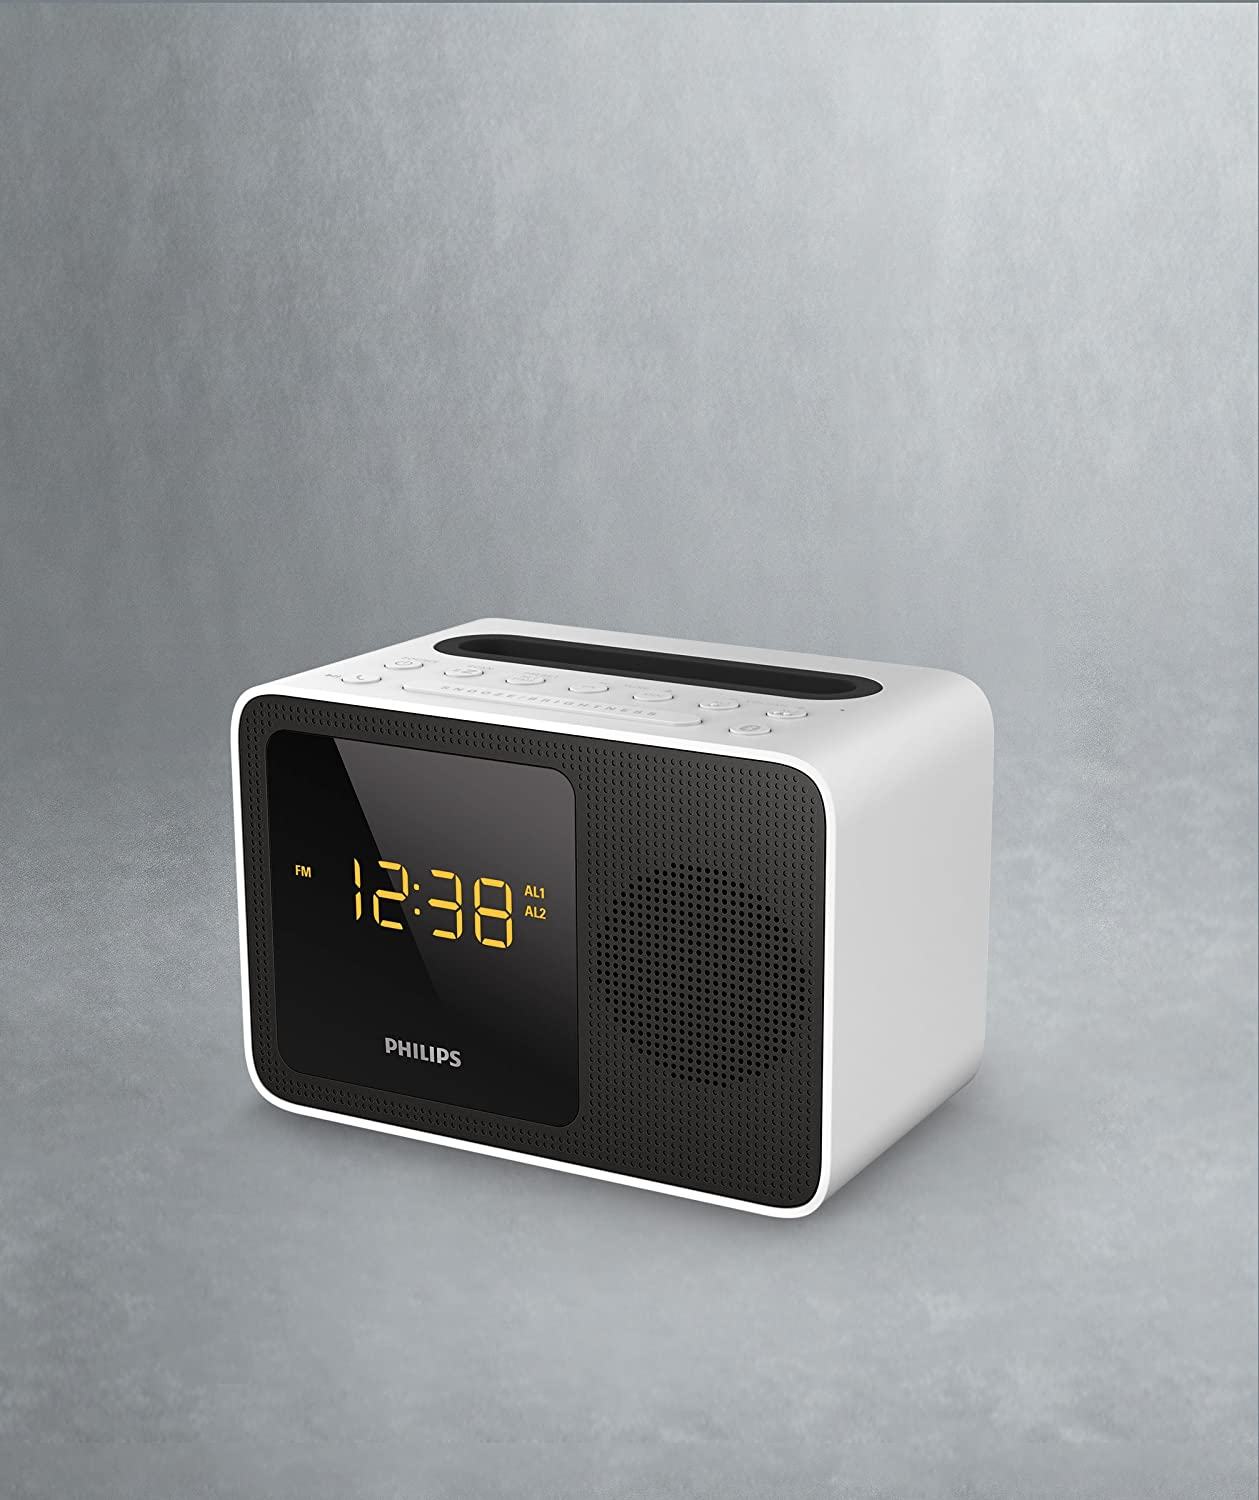 Philips AJT5300W/12 - Radio portátil (Digital, FM, 87,5-108 MHz, 2,7 W, 50 db), Blanco